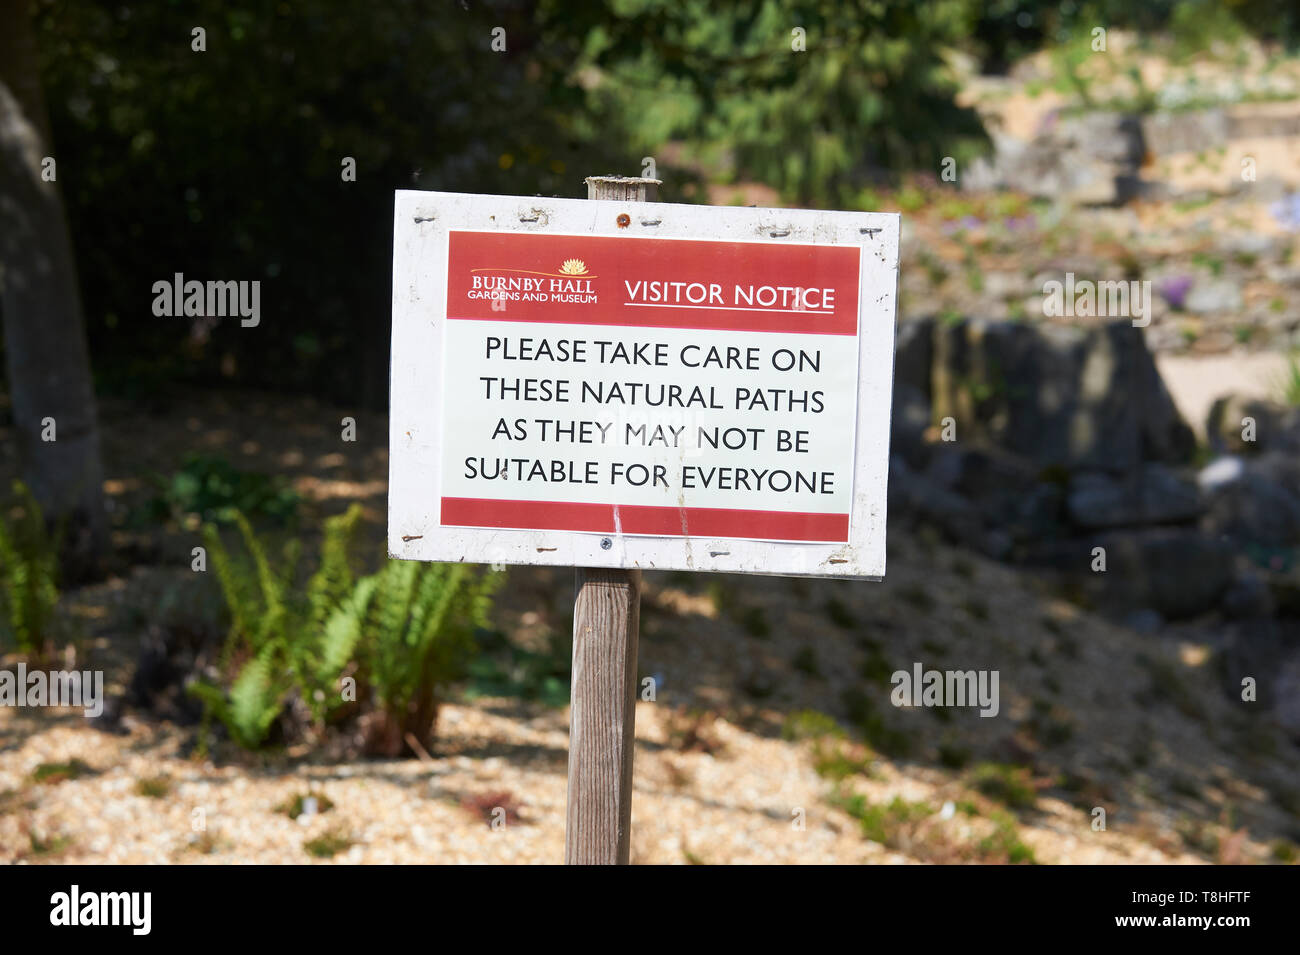 Warning notice about uneven pathways (Sidewalks) - Stock Image